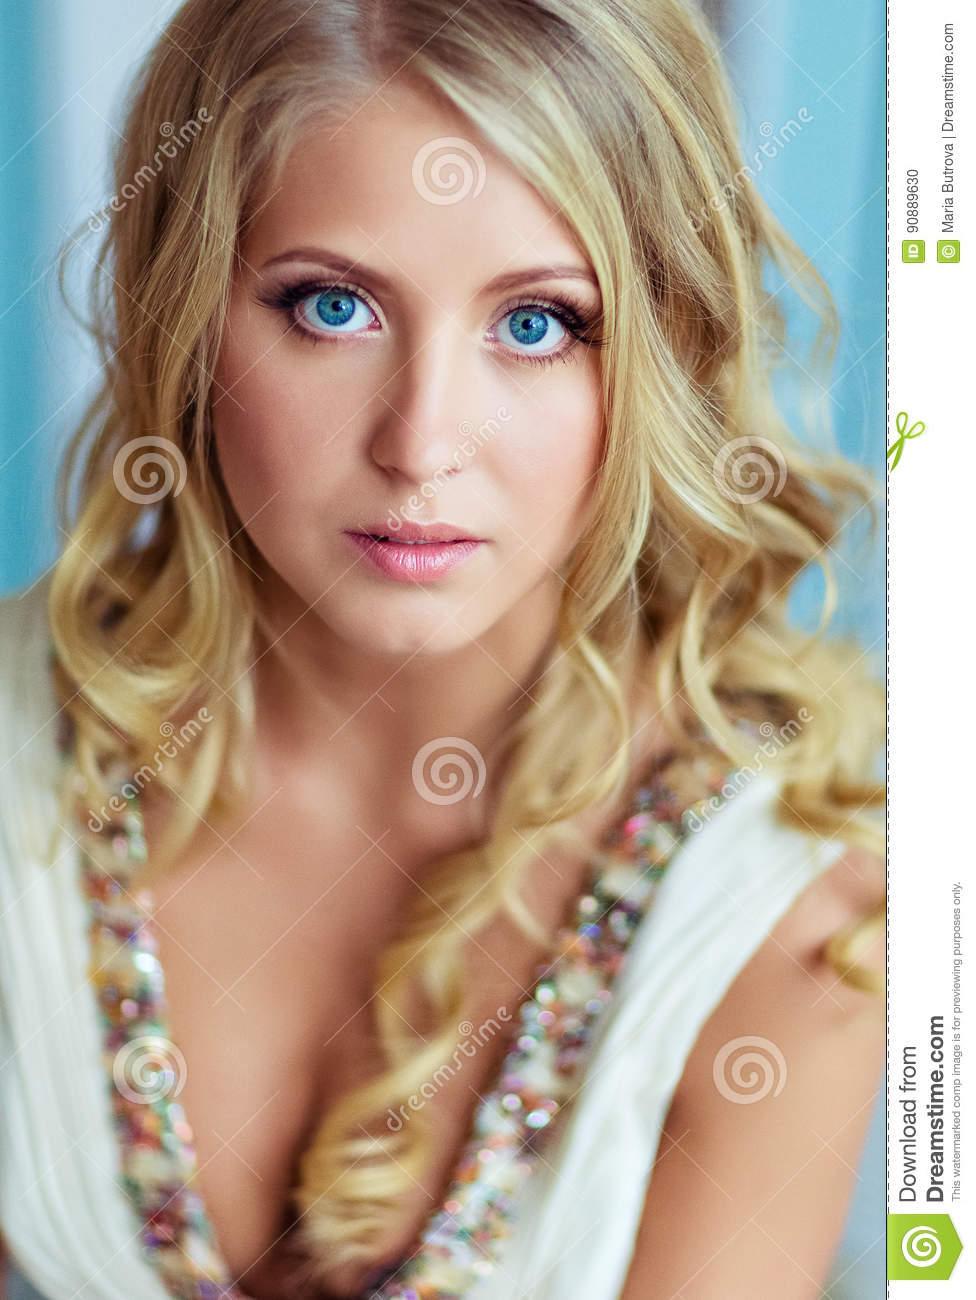 Very Beautiful Blond Woman With Long Curly Hair And Blue Eyes Stock Photo Image Of Blond Eyes 90889630